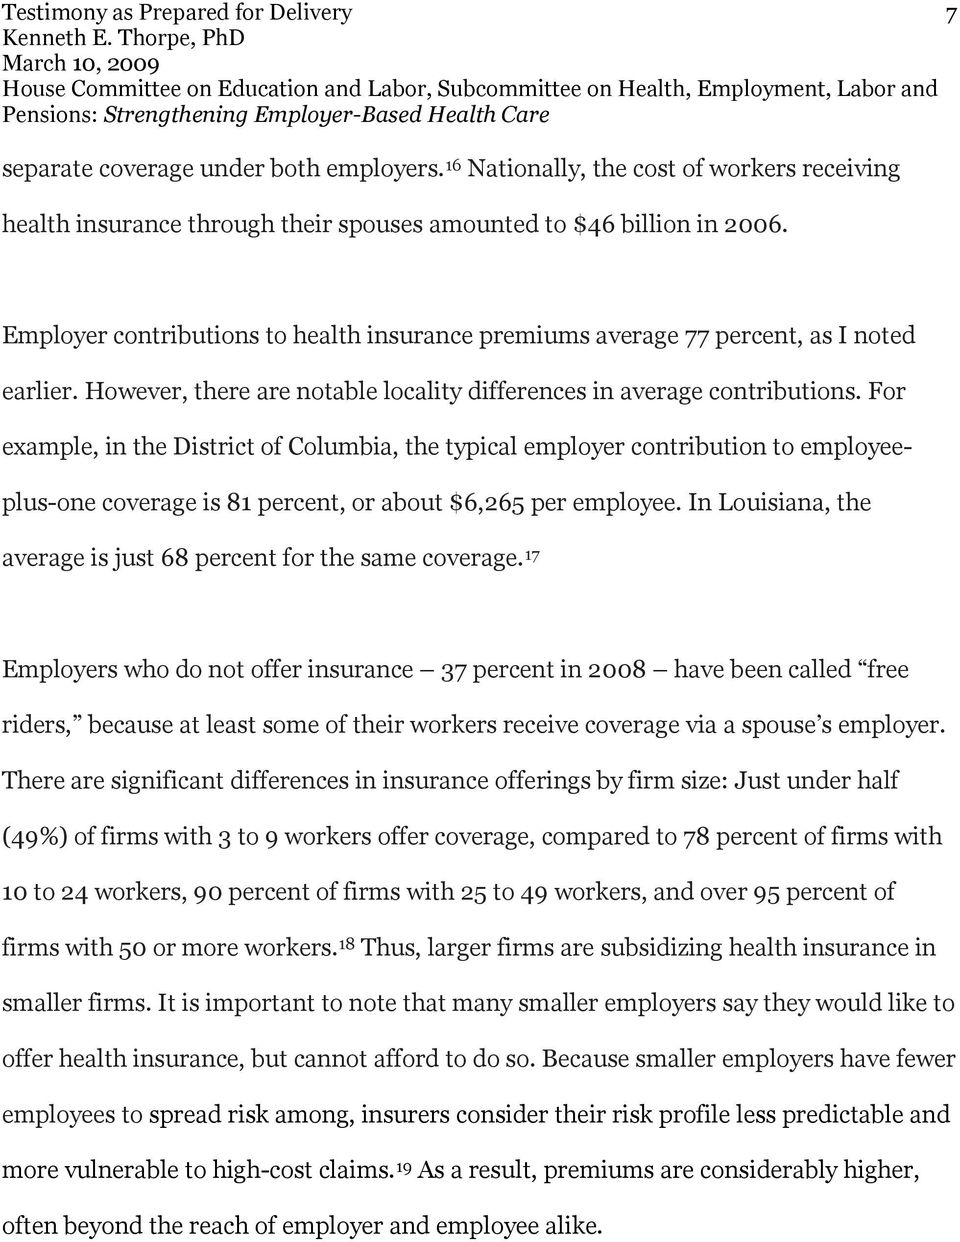 For example, in the District of Columbia, the typical employer contribution to employeeplus-one coverage is 81 percent, or about $6,265 per employee.